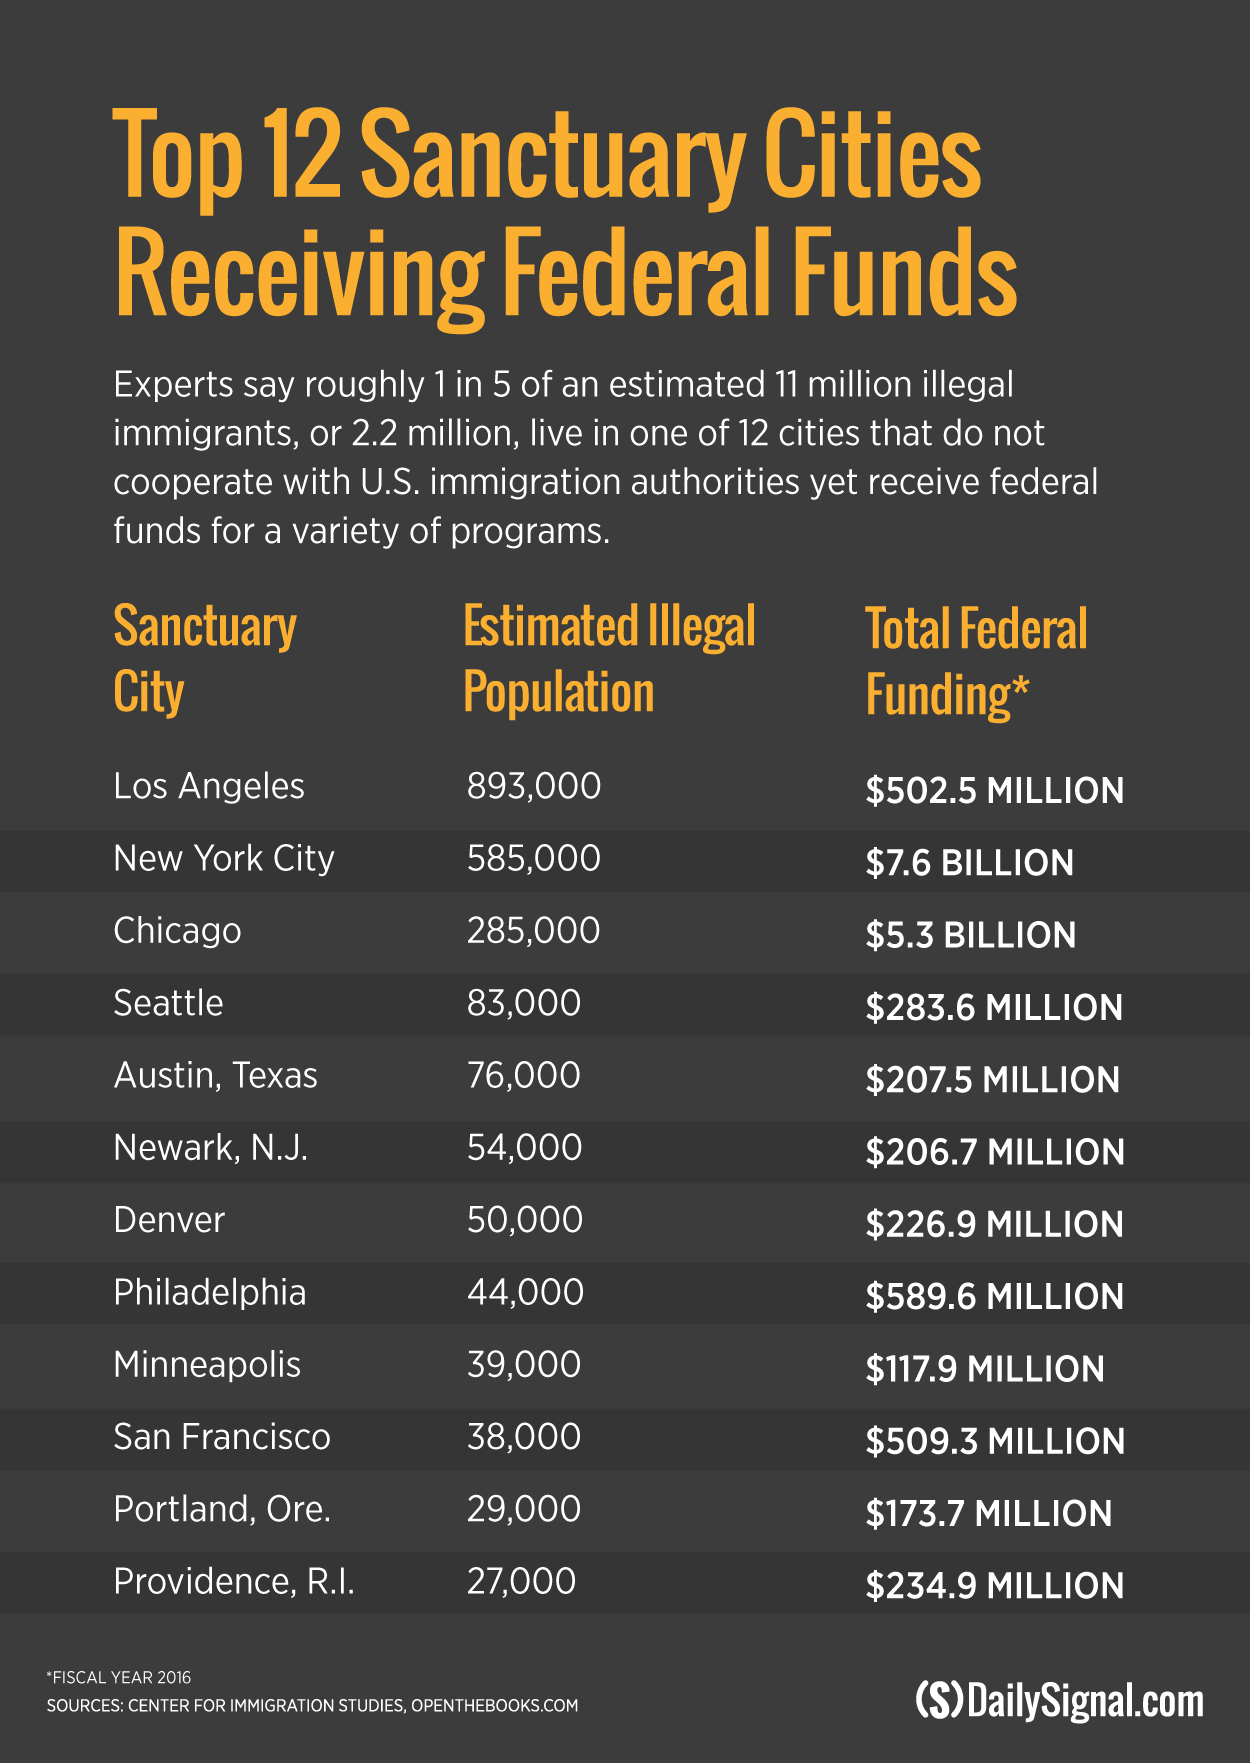 170202_sanctuary-cities-fed-funding_v4